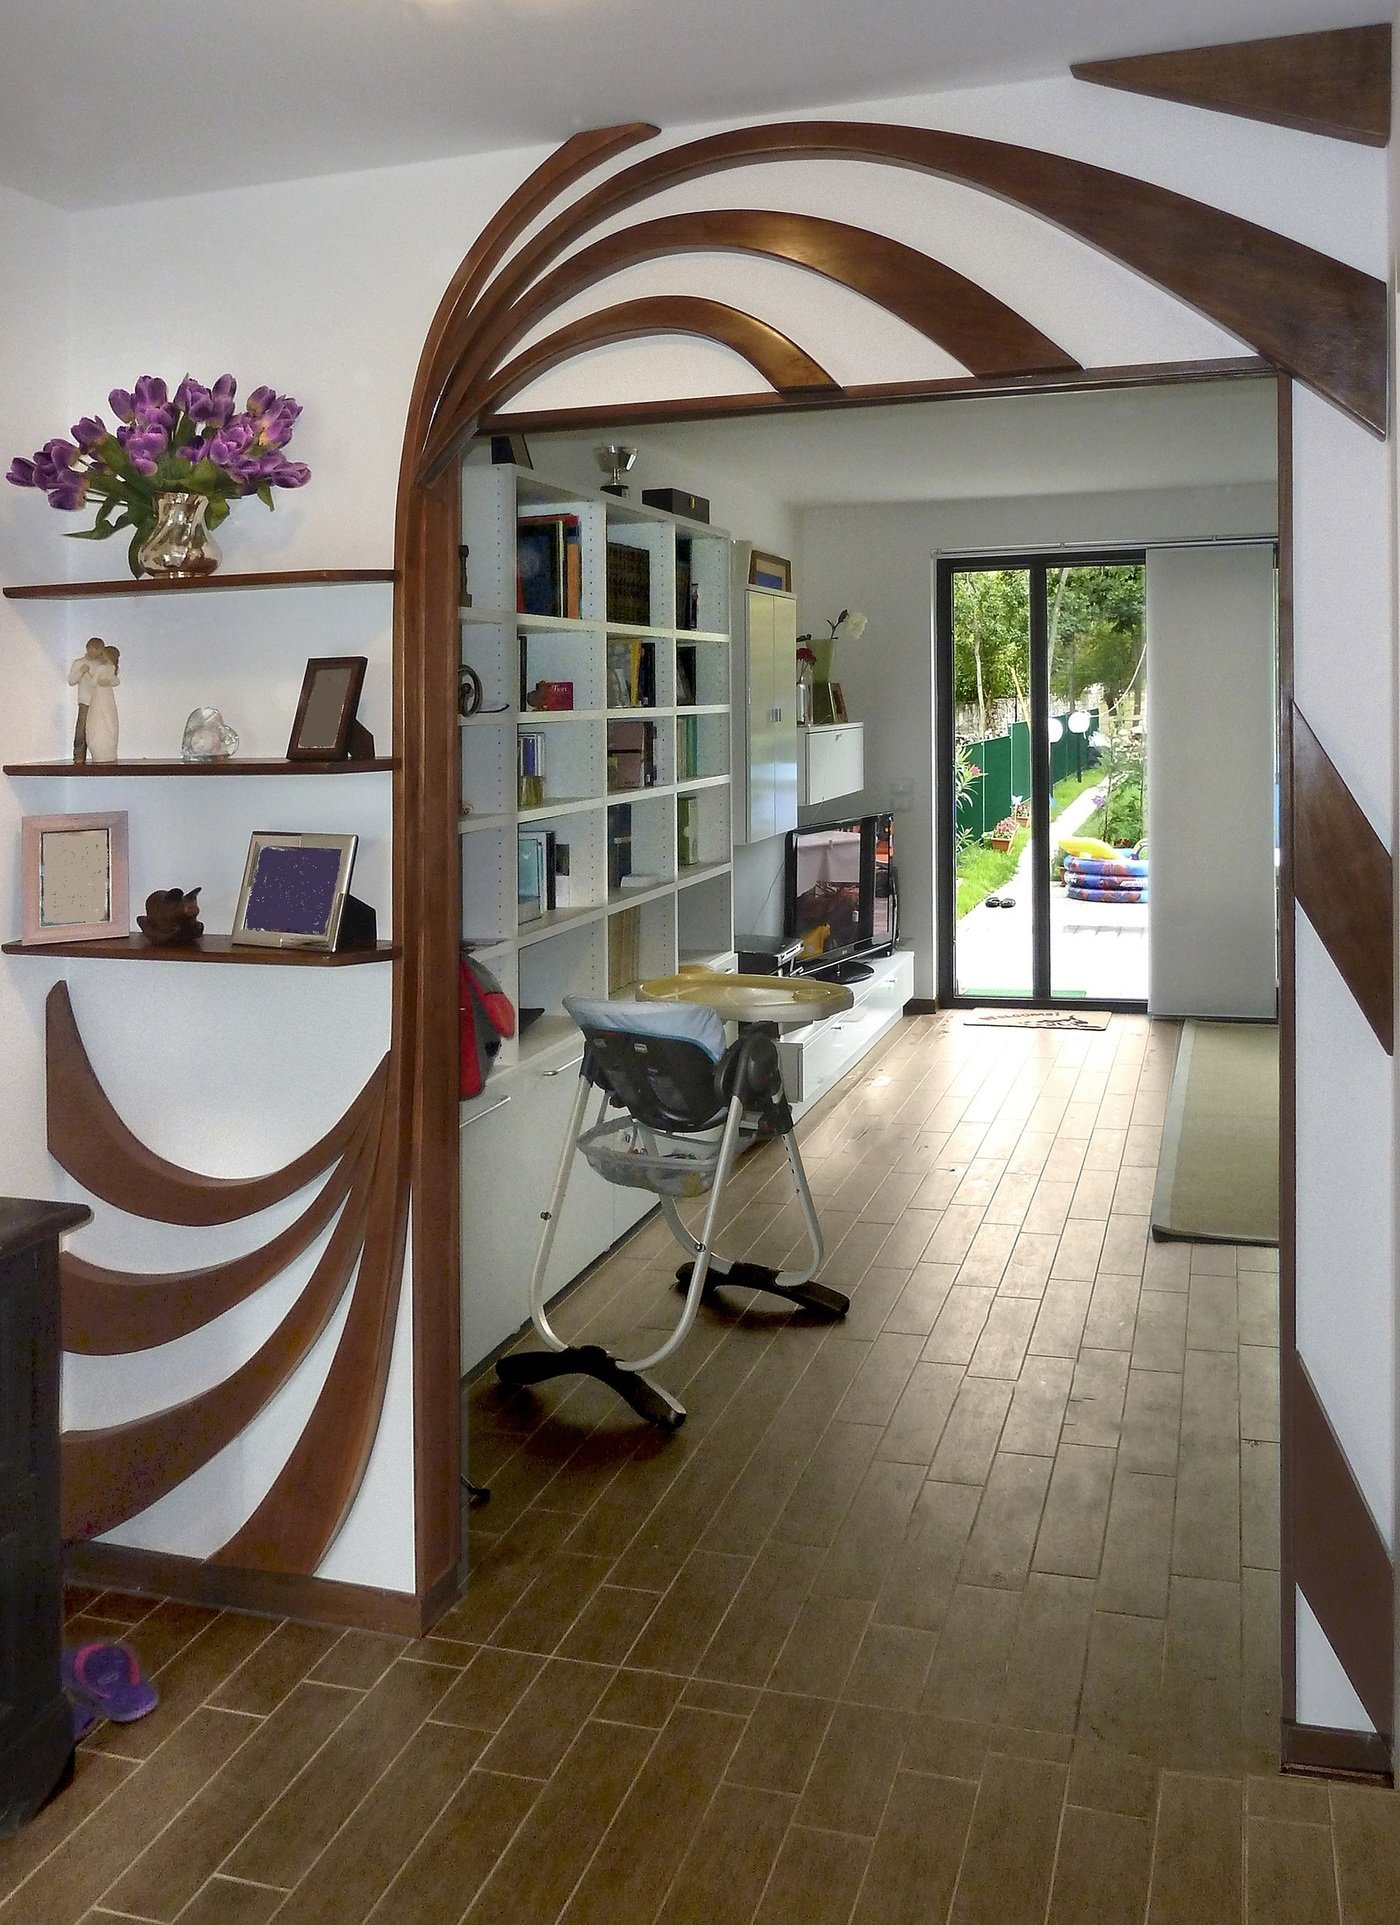 Living Room Entrance By Diego Miscoria At Coroflot Com